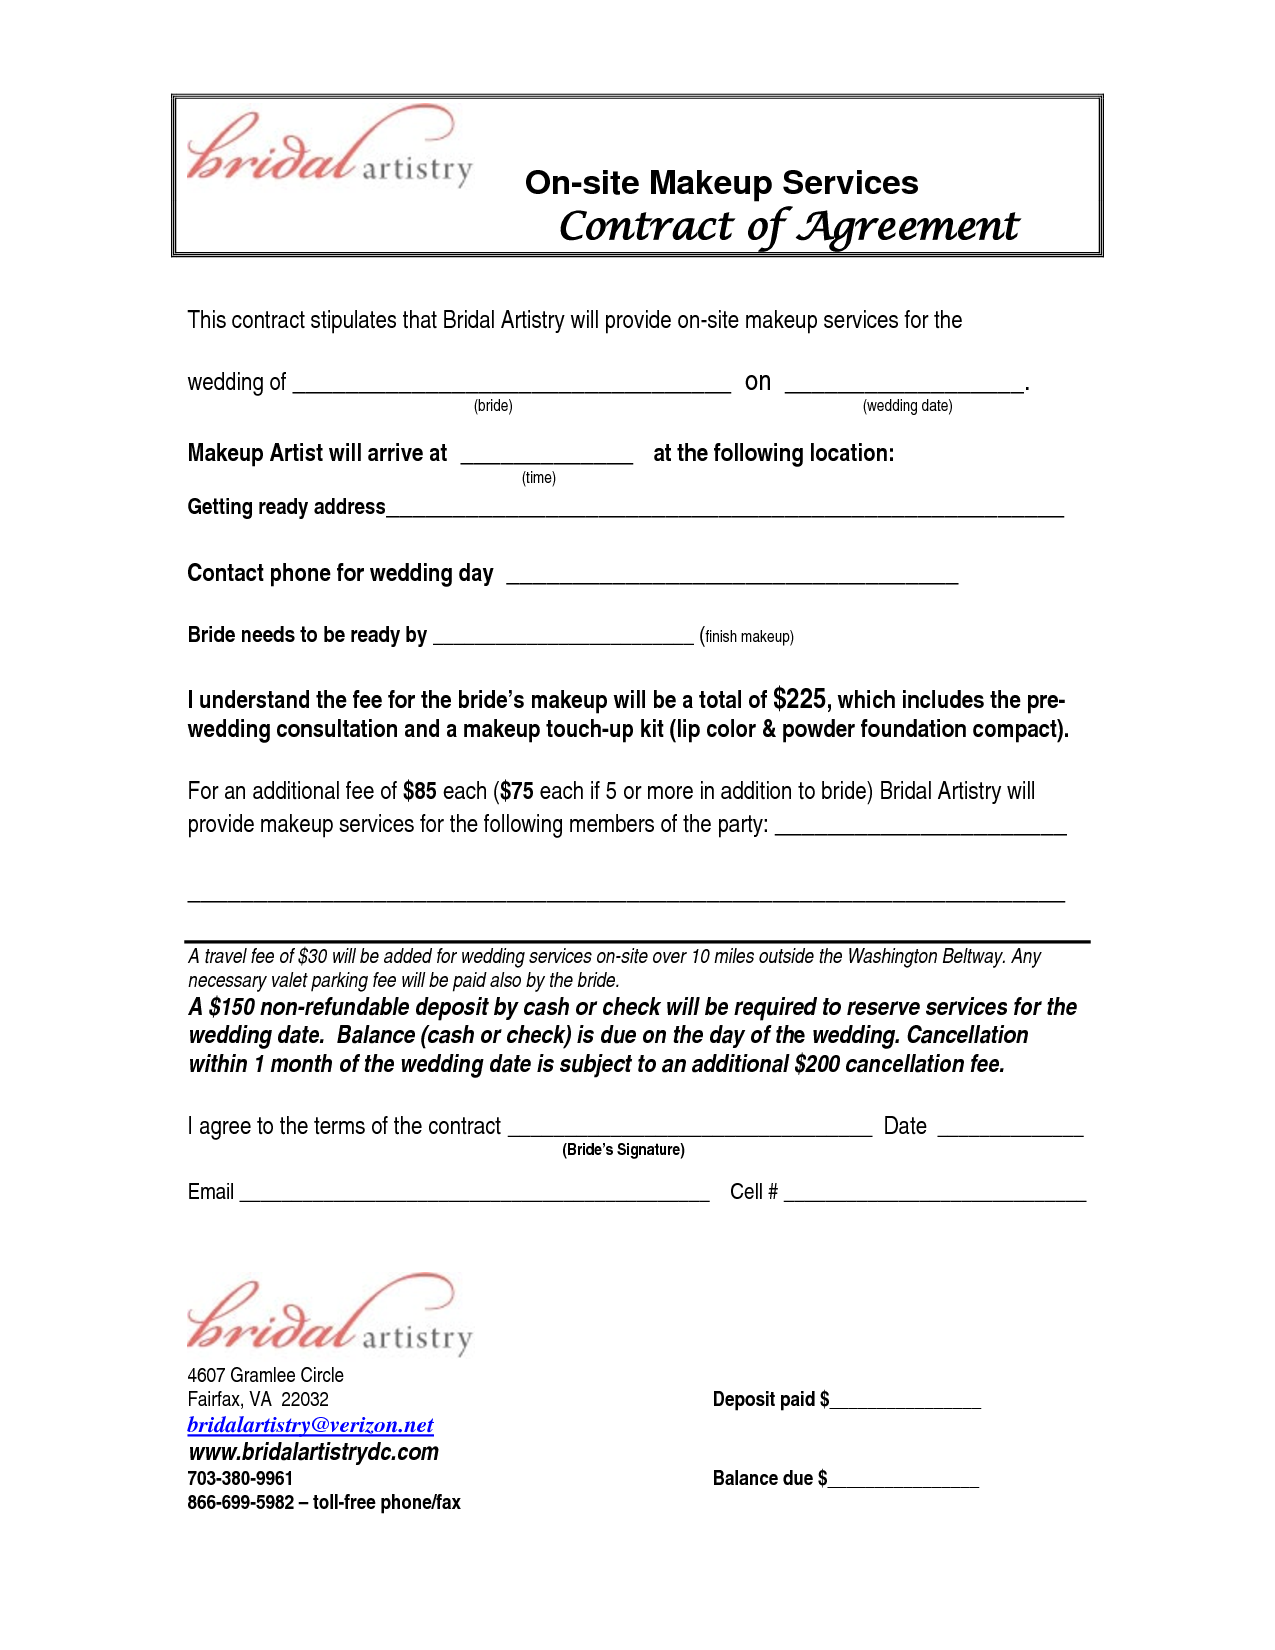 bridalhaircotract | Site Makeup Services Contract Agreement This